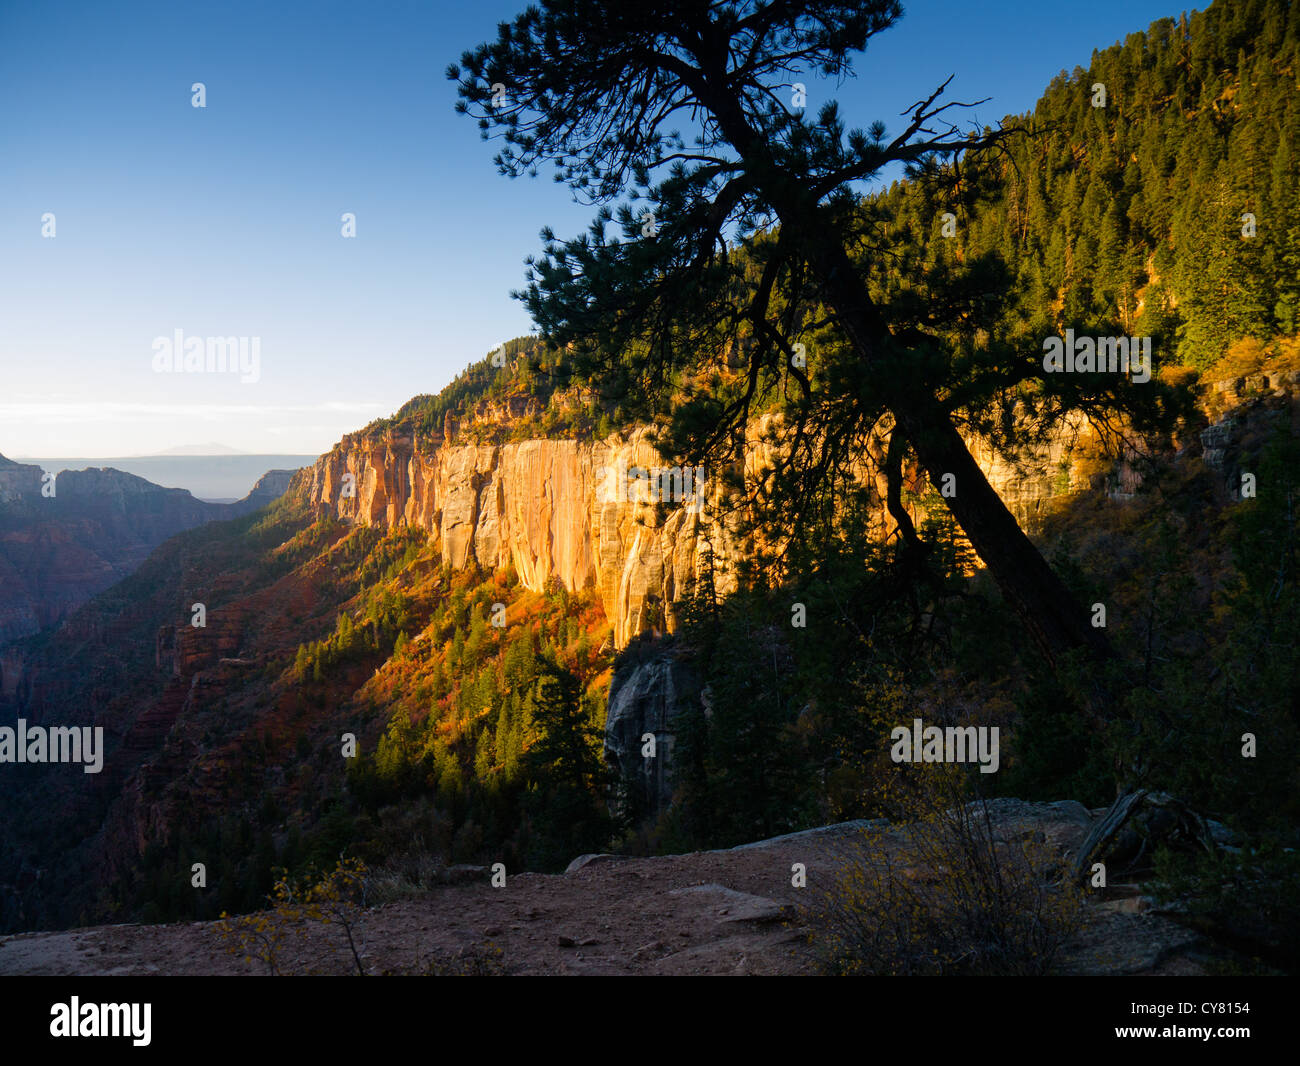 North Rim Trail in Grand Canyon National Park. - Stock Image